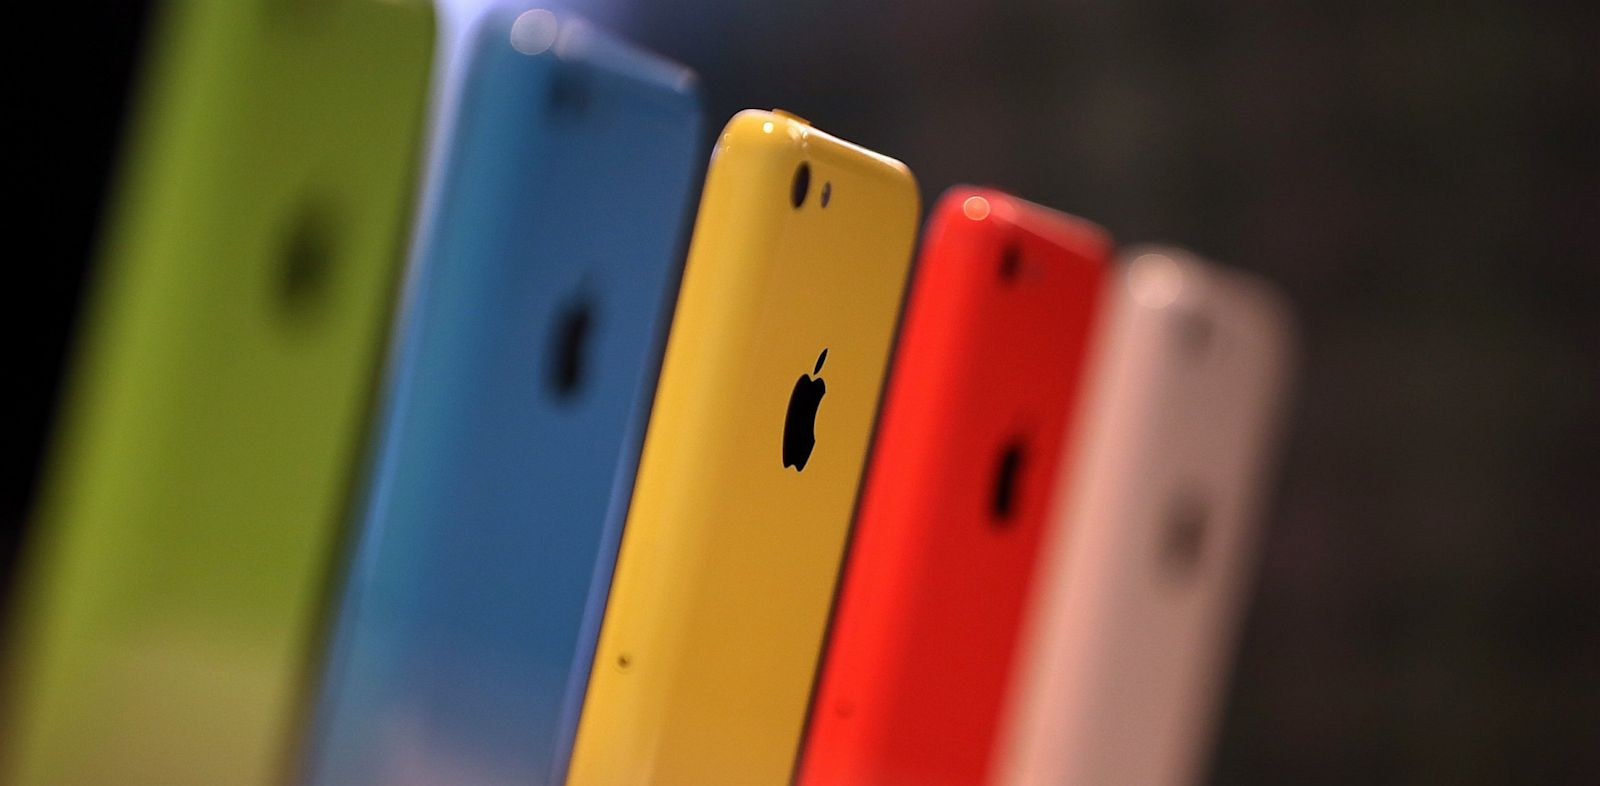 PHOTO: The new iPhone 5C is displayed during an Apple product announcement at the Apple campus, Sept. 10, 2013, in Cupertino, Calif.